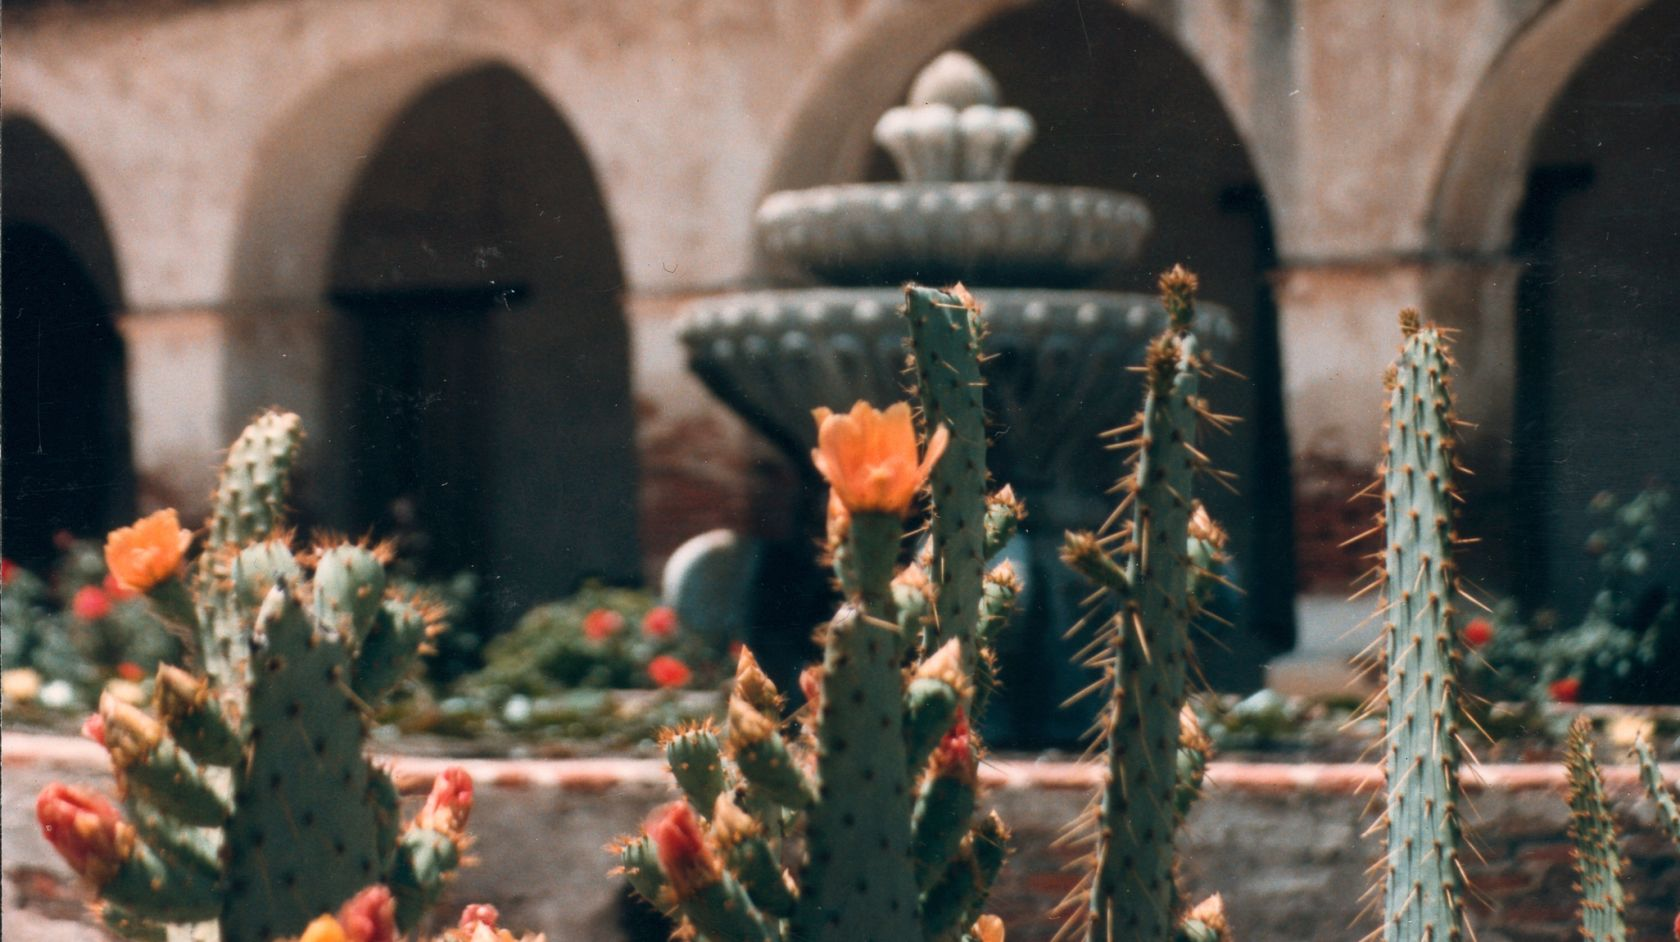 A Vase Of Flowers Sits In Front Of A Building